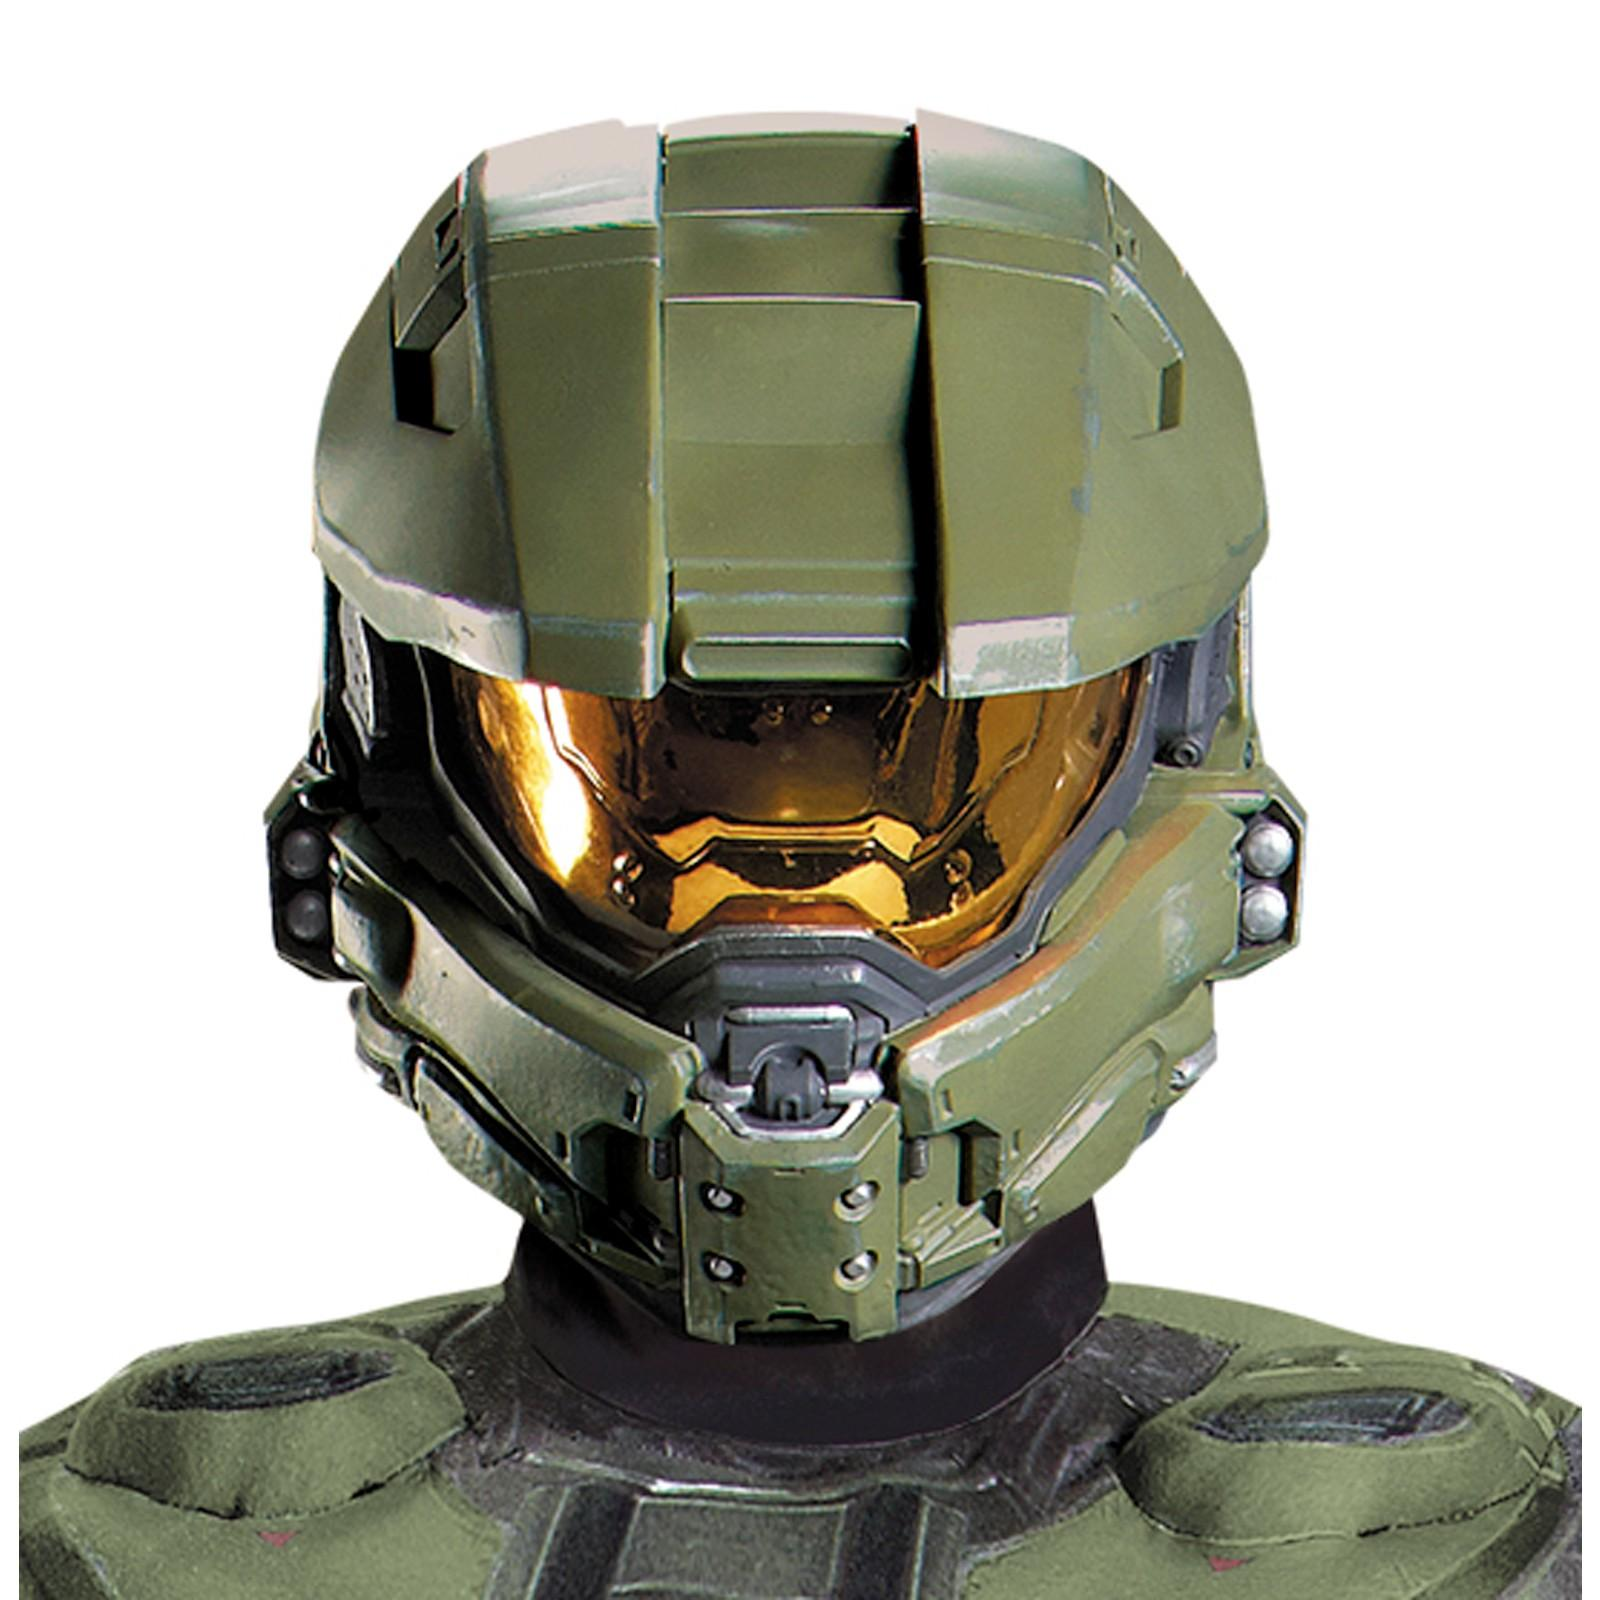 Halo 3 Master Chief 2 piece Vacuform Mask Adult - One Size  sc 1 st  Walmart & Halo 3 Master Chief 2 piece Vacuform Mask Adult - One Size - Walmart.com